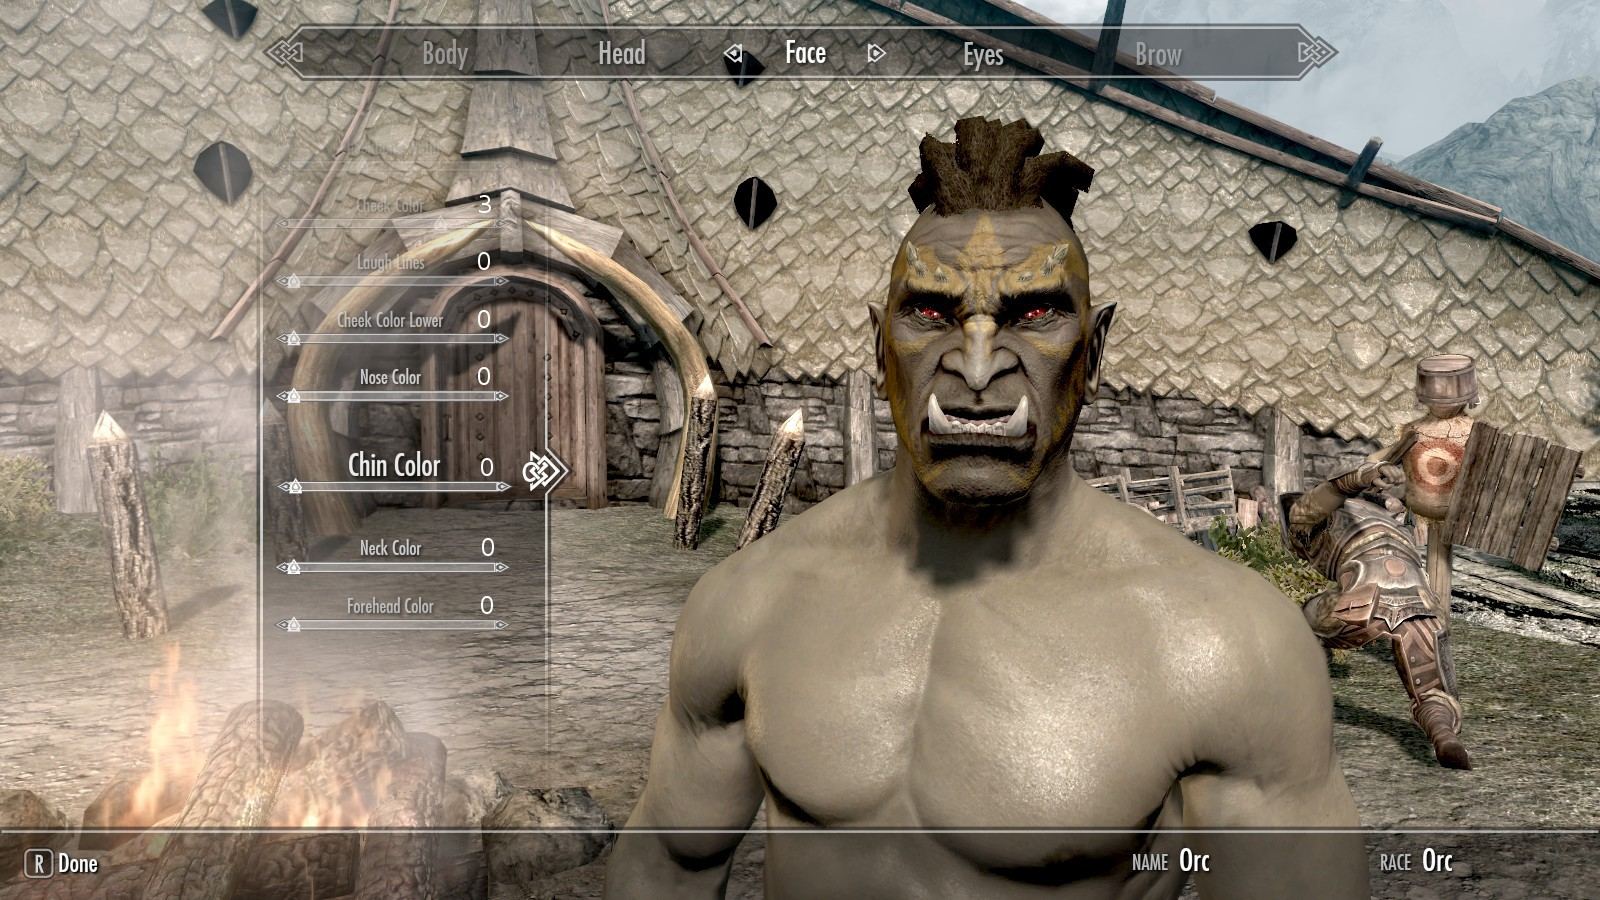 Oblivion character creation celebrity baby